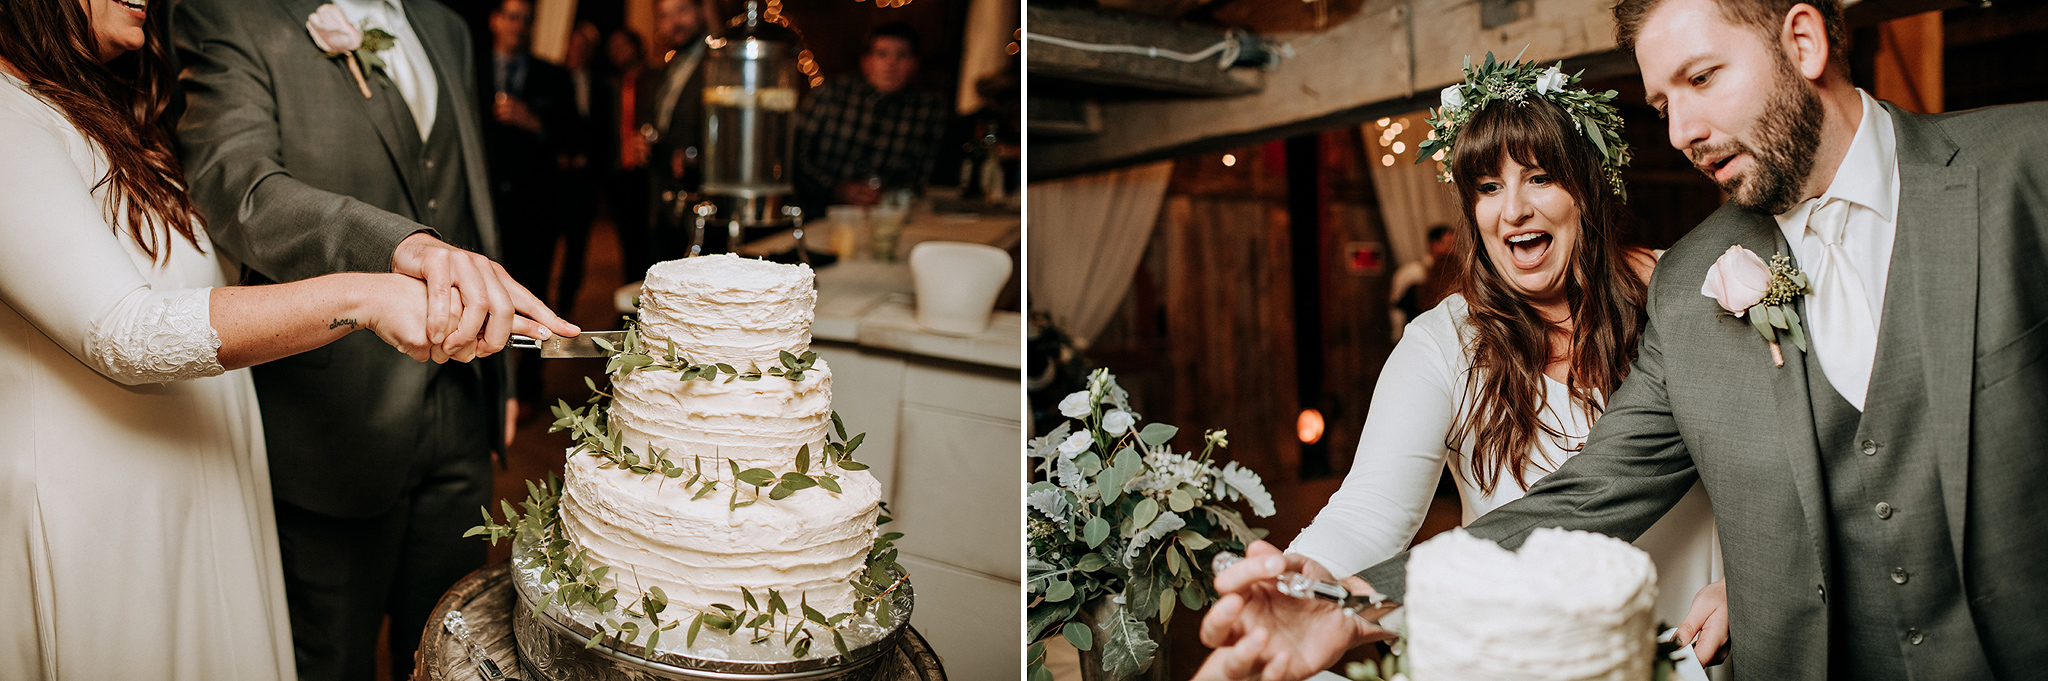 cake cutting at meaford barn wedding